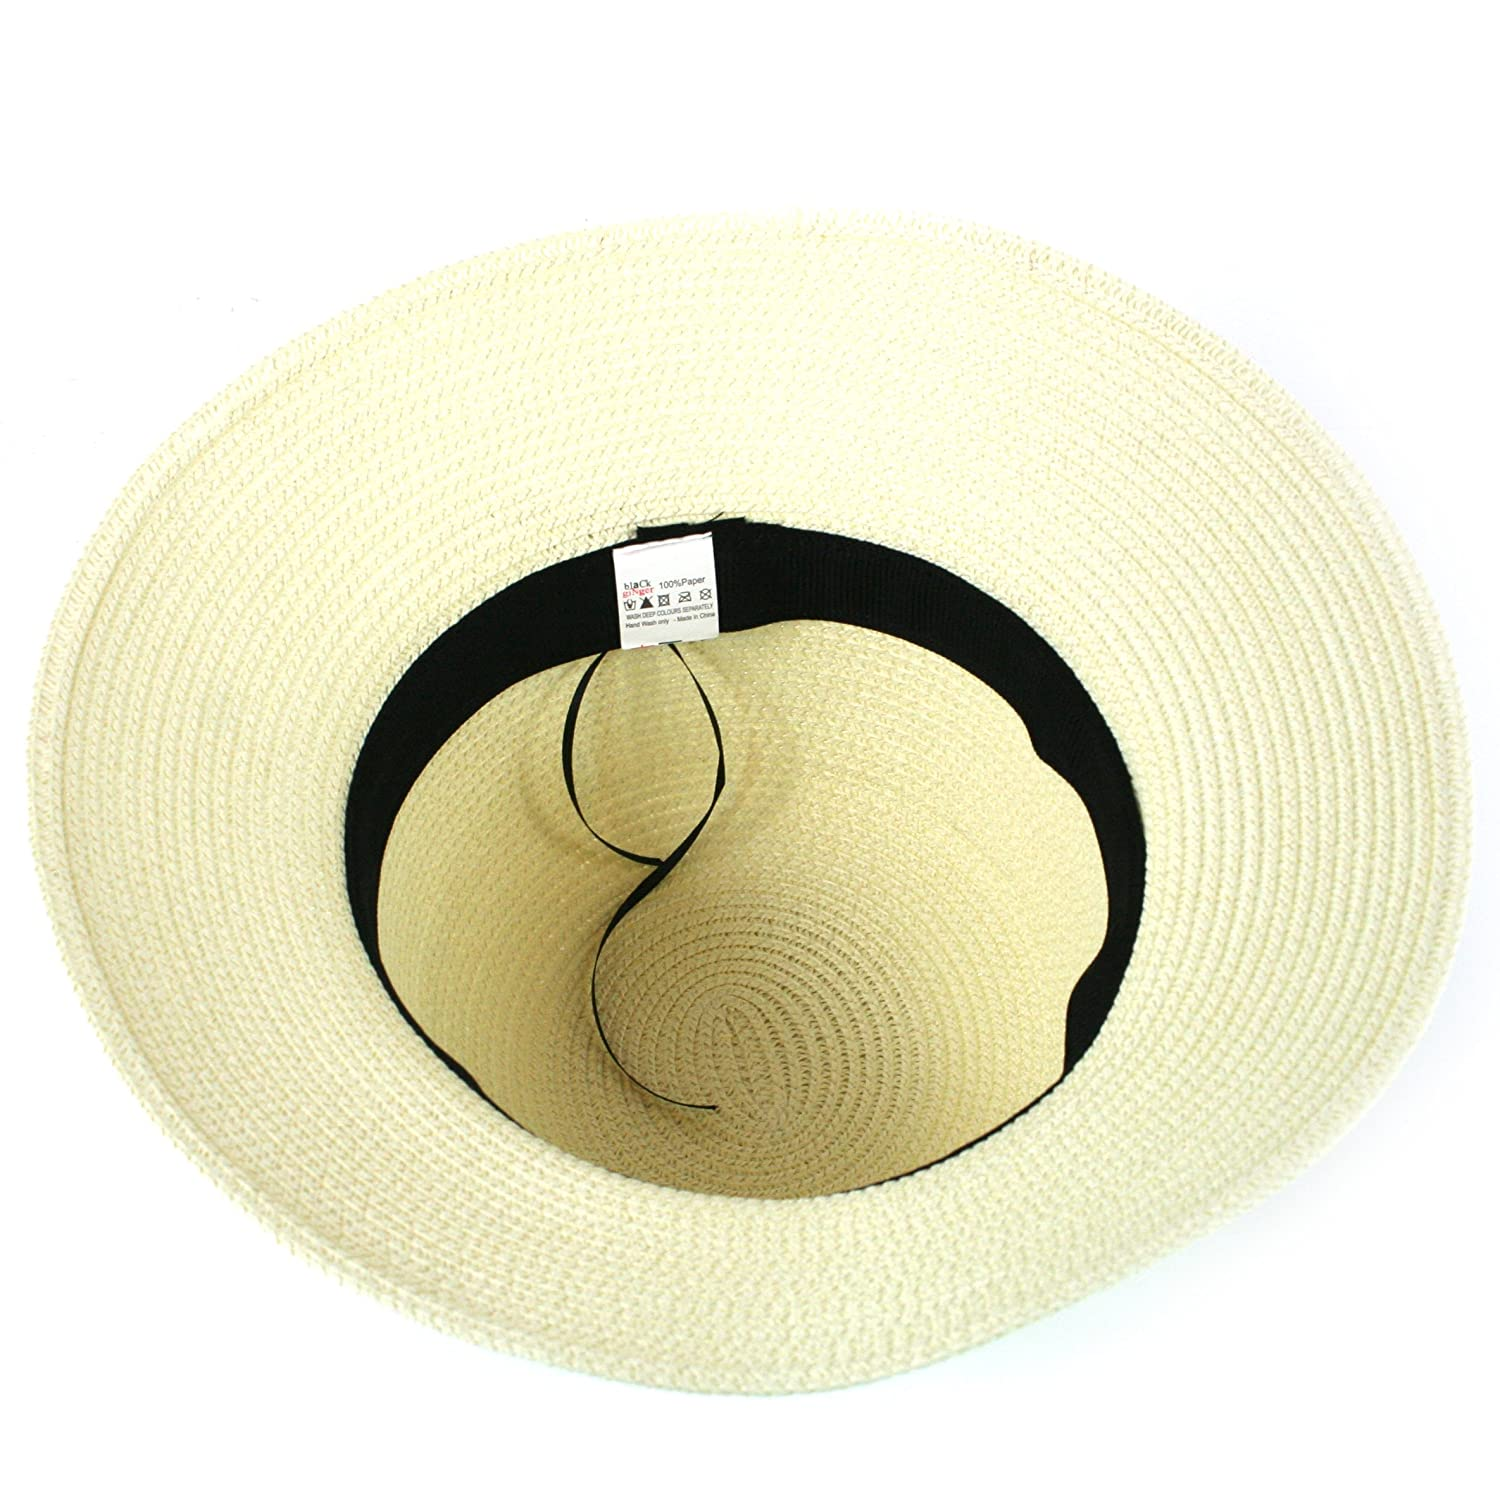 Ladies Straw hat That can be Folded into its Travel Bag Black Ginger Folding Sun Hat with Pompom Decorations Adjustable Size.